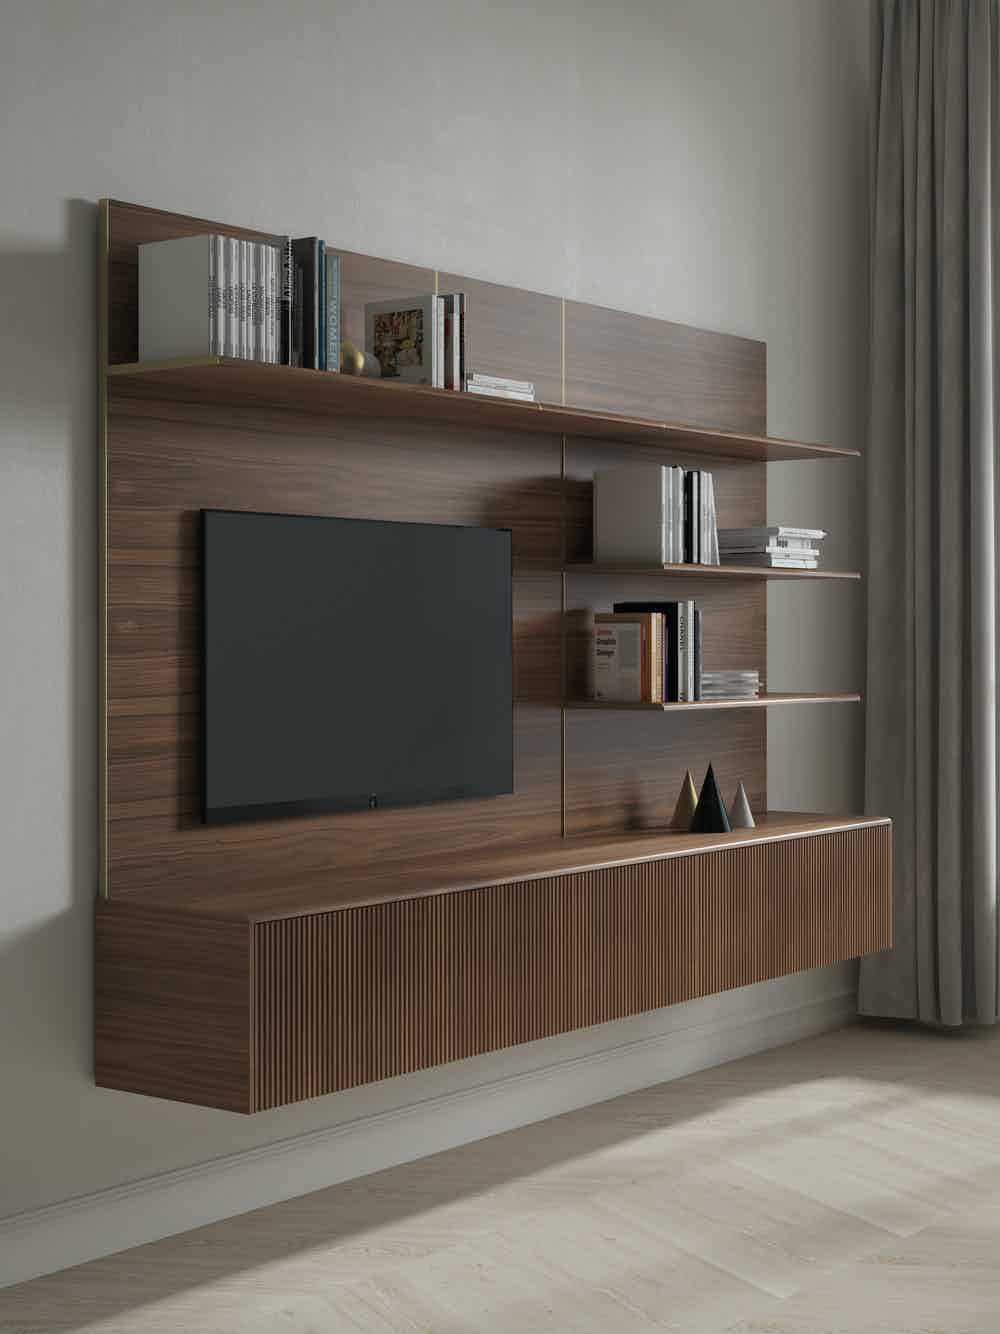 Punt furniture malmo storage system angle haute living